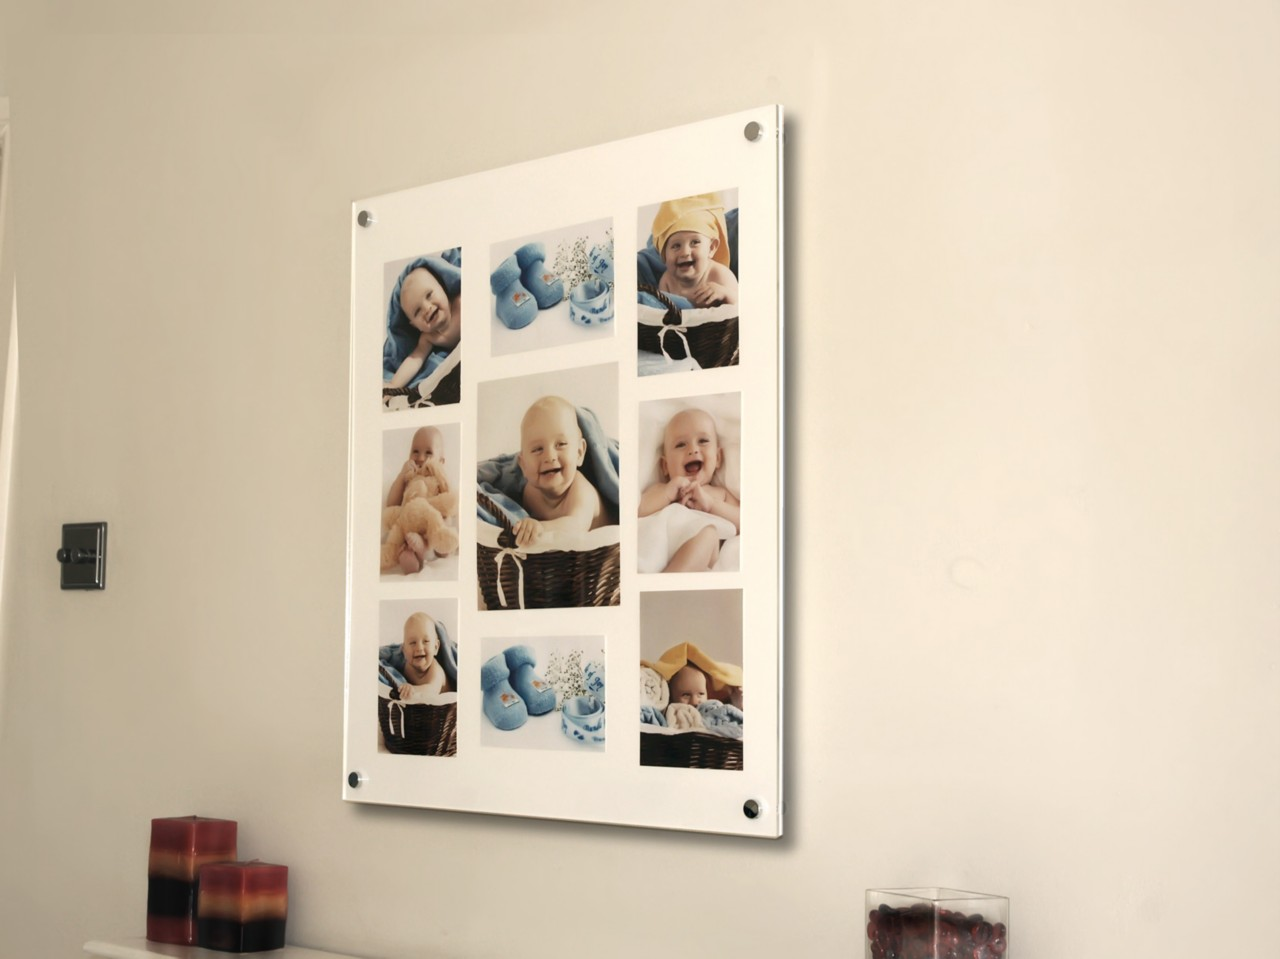 Details about Multi picture photo frame 10 x 8 /6 x 4 / 7x5\